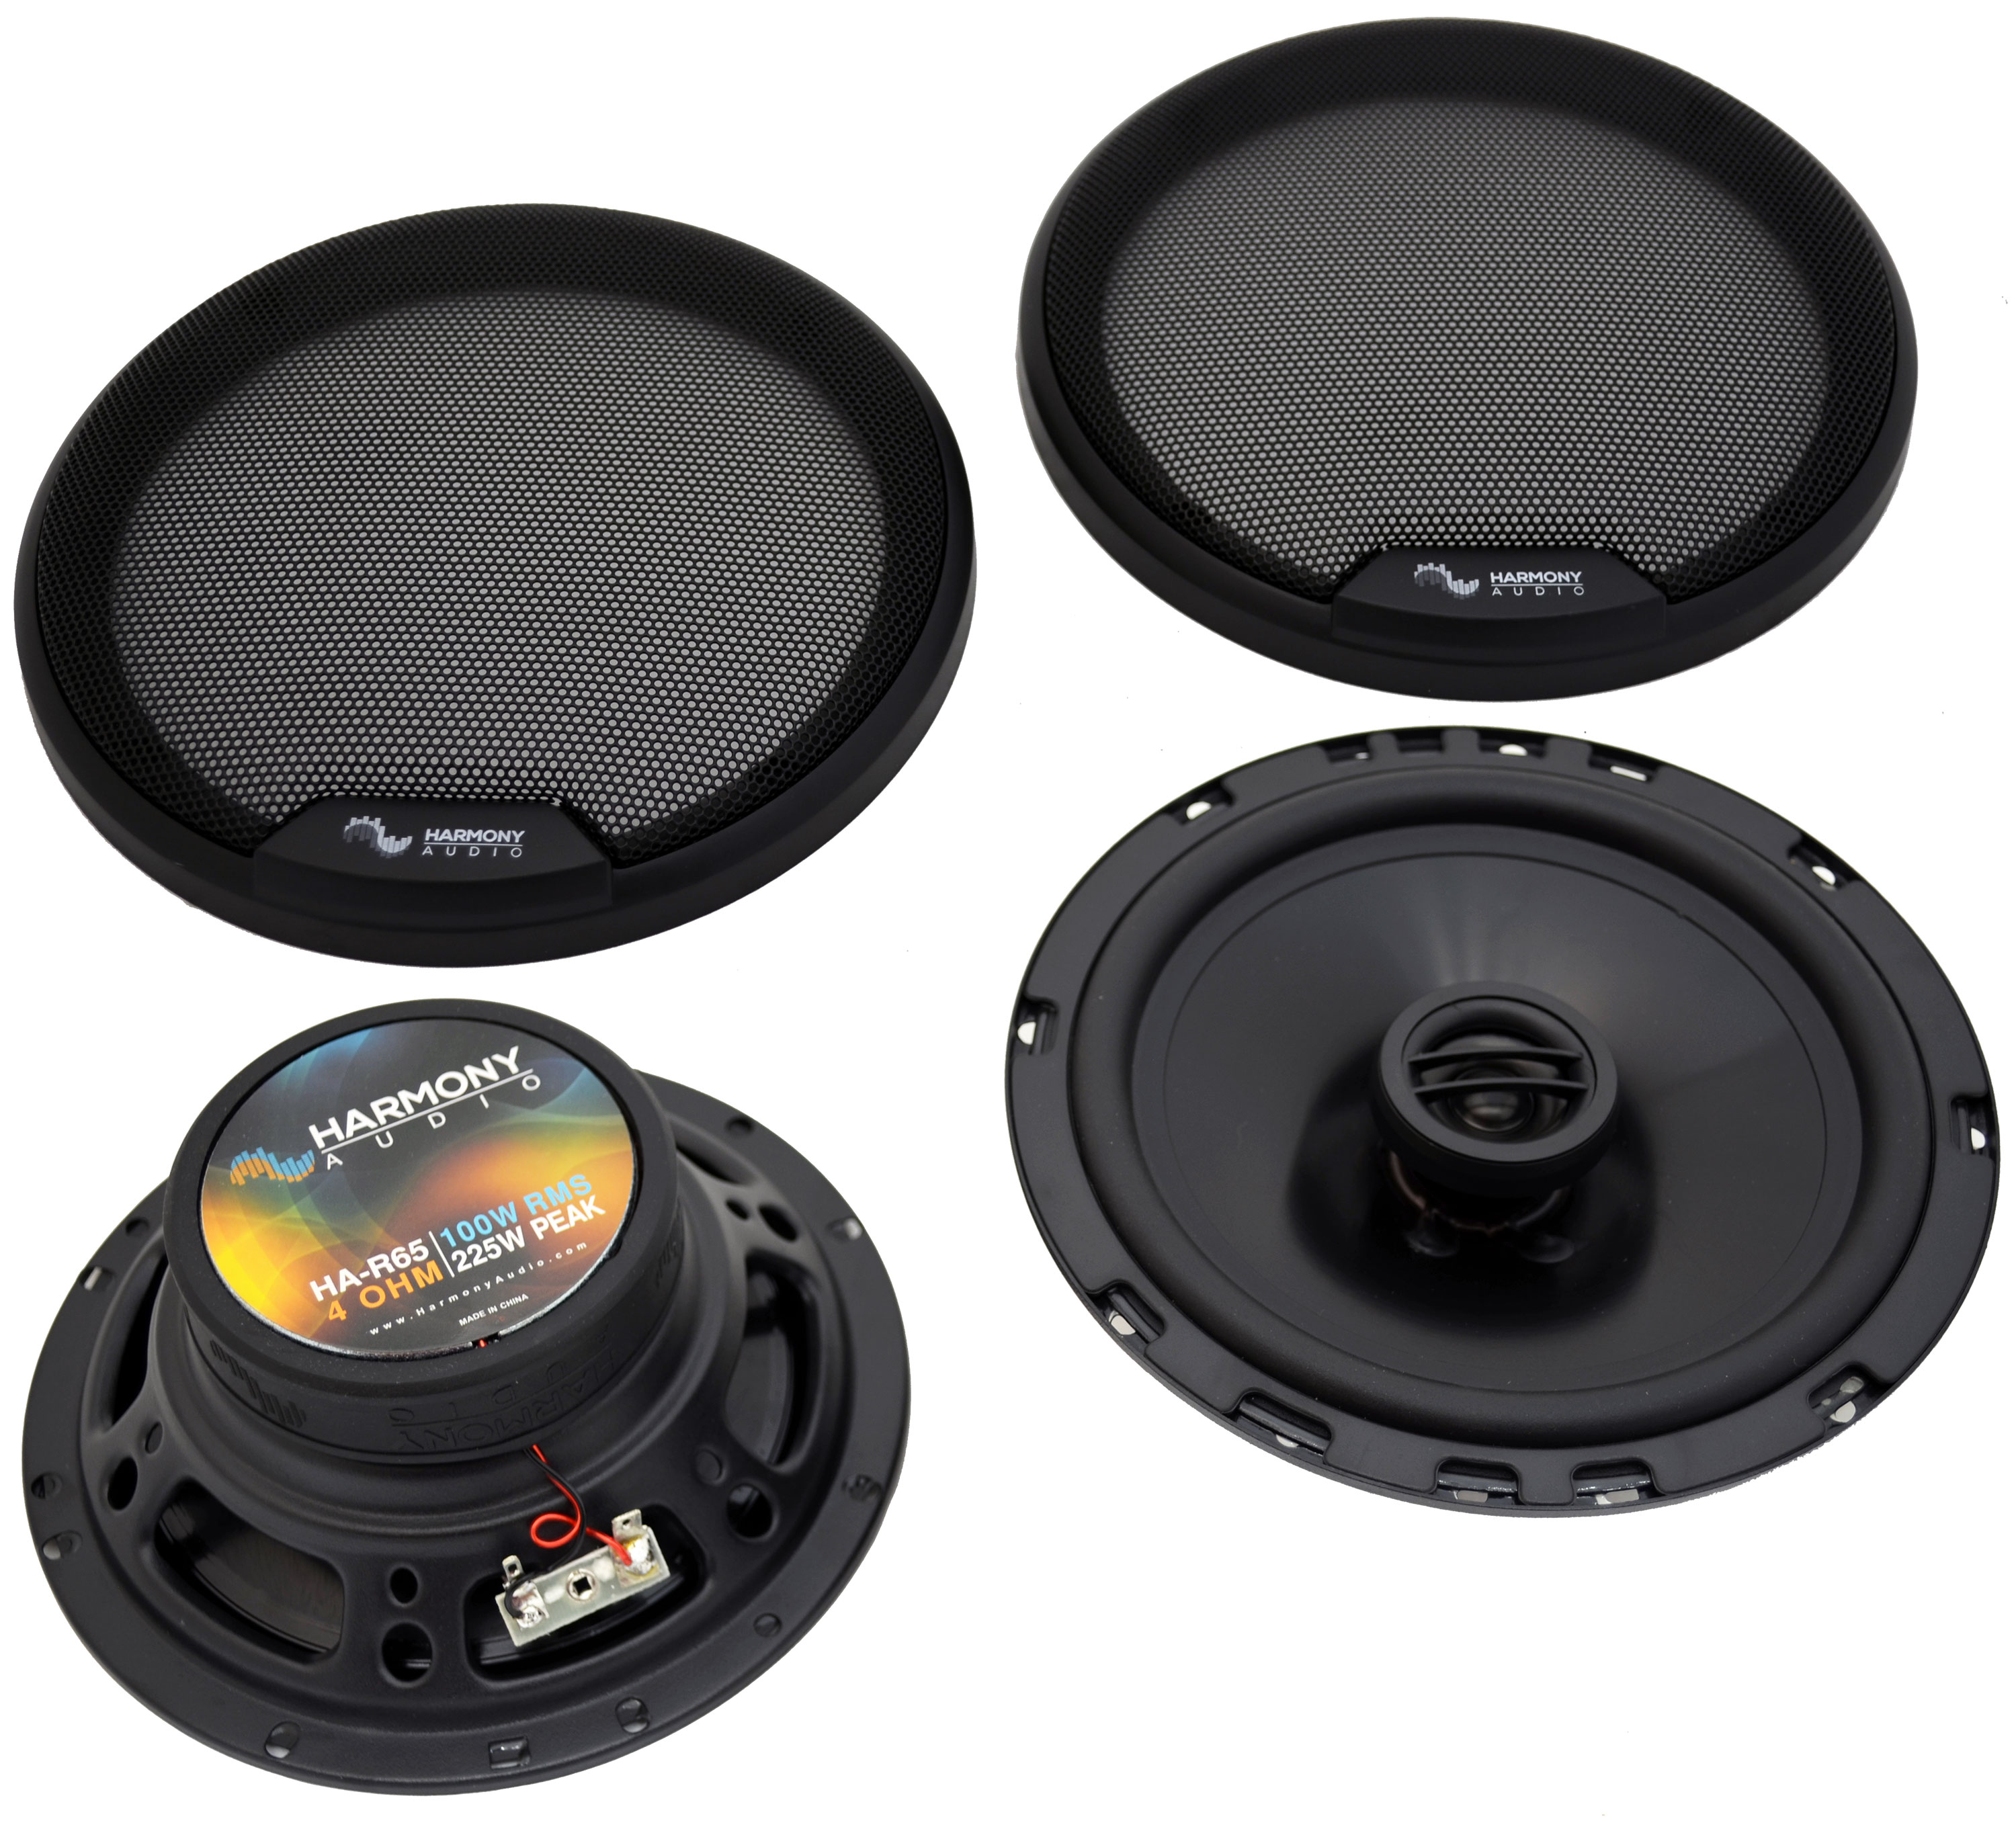 Fits BMW 3 Series 2006-2013 Rear Deck Replacement Speaker Harmony HA-R65 New